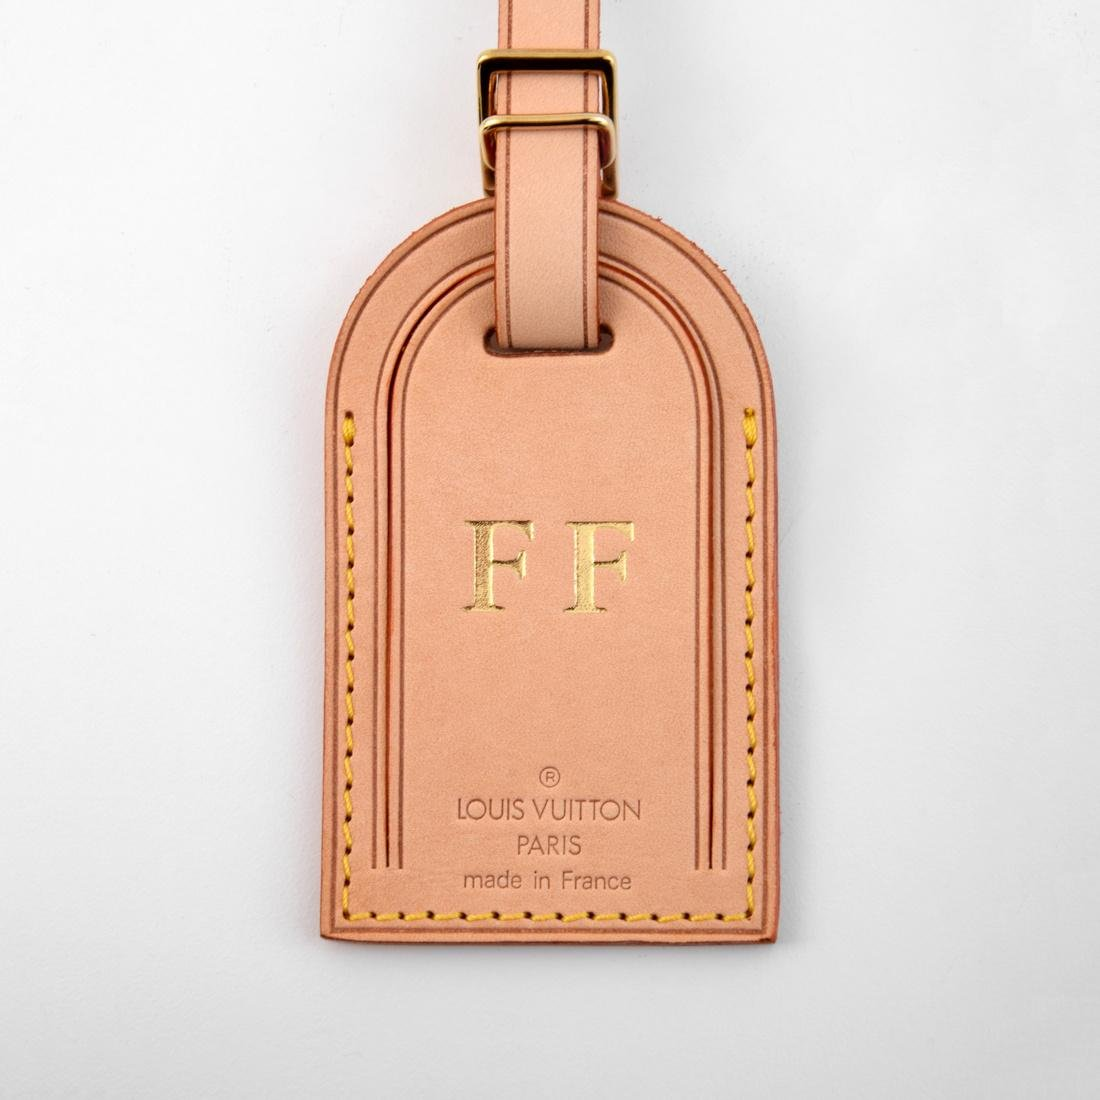 Farrah Fawcett Monogrammed Louis Vuitton Luggage Tag